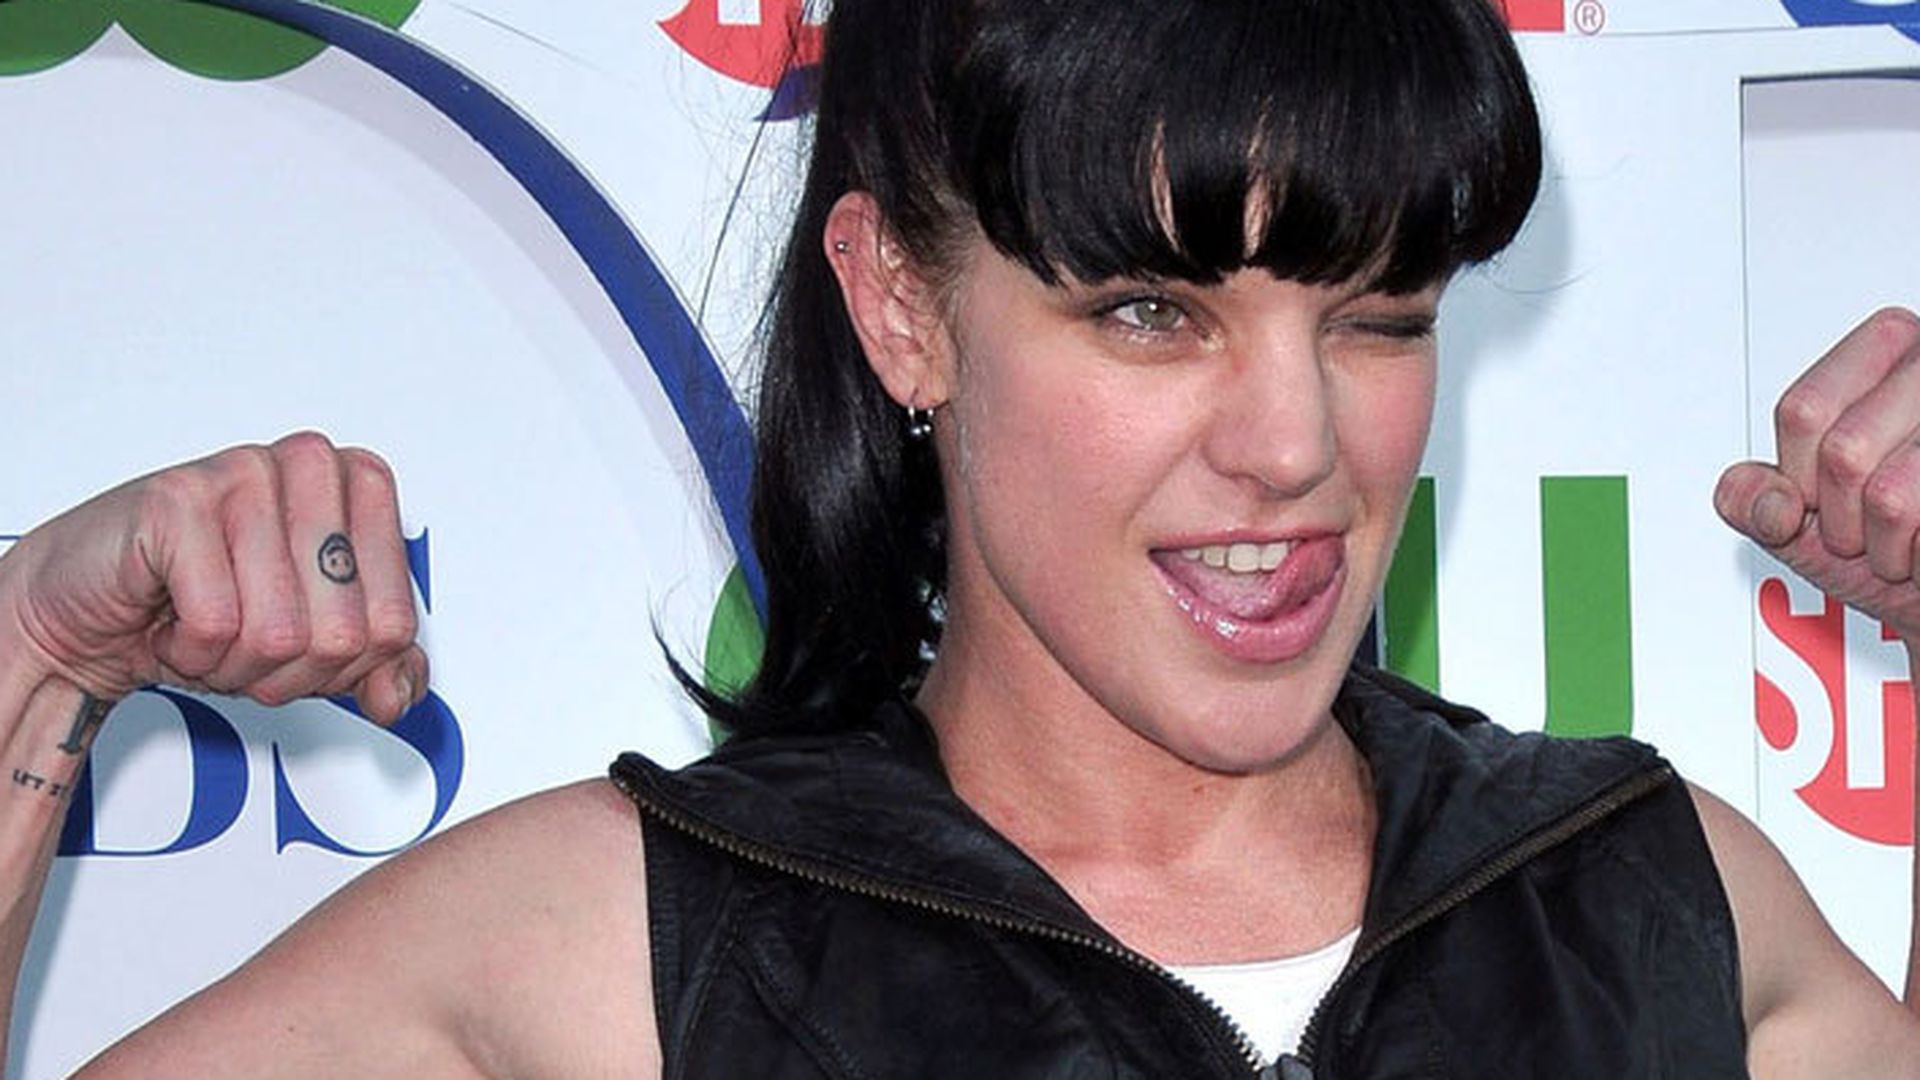 Navy cis pauley perrette zeigt ihre vielen tattoos for Ncis abby tattoo